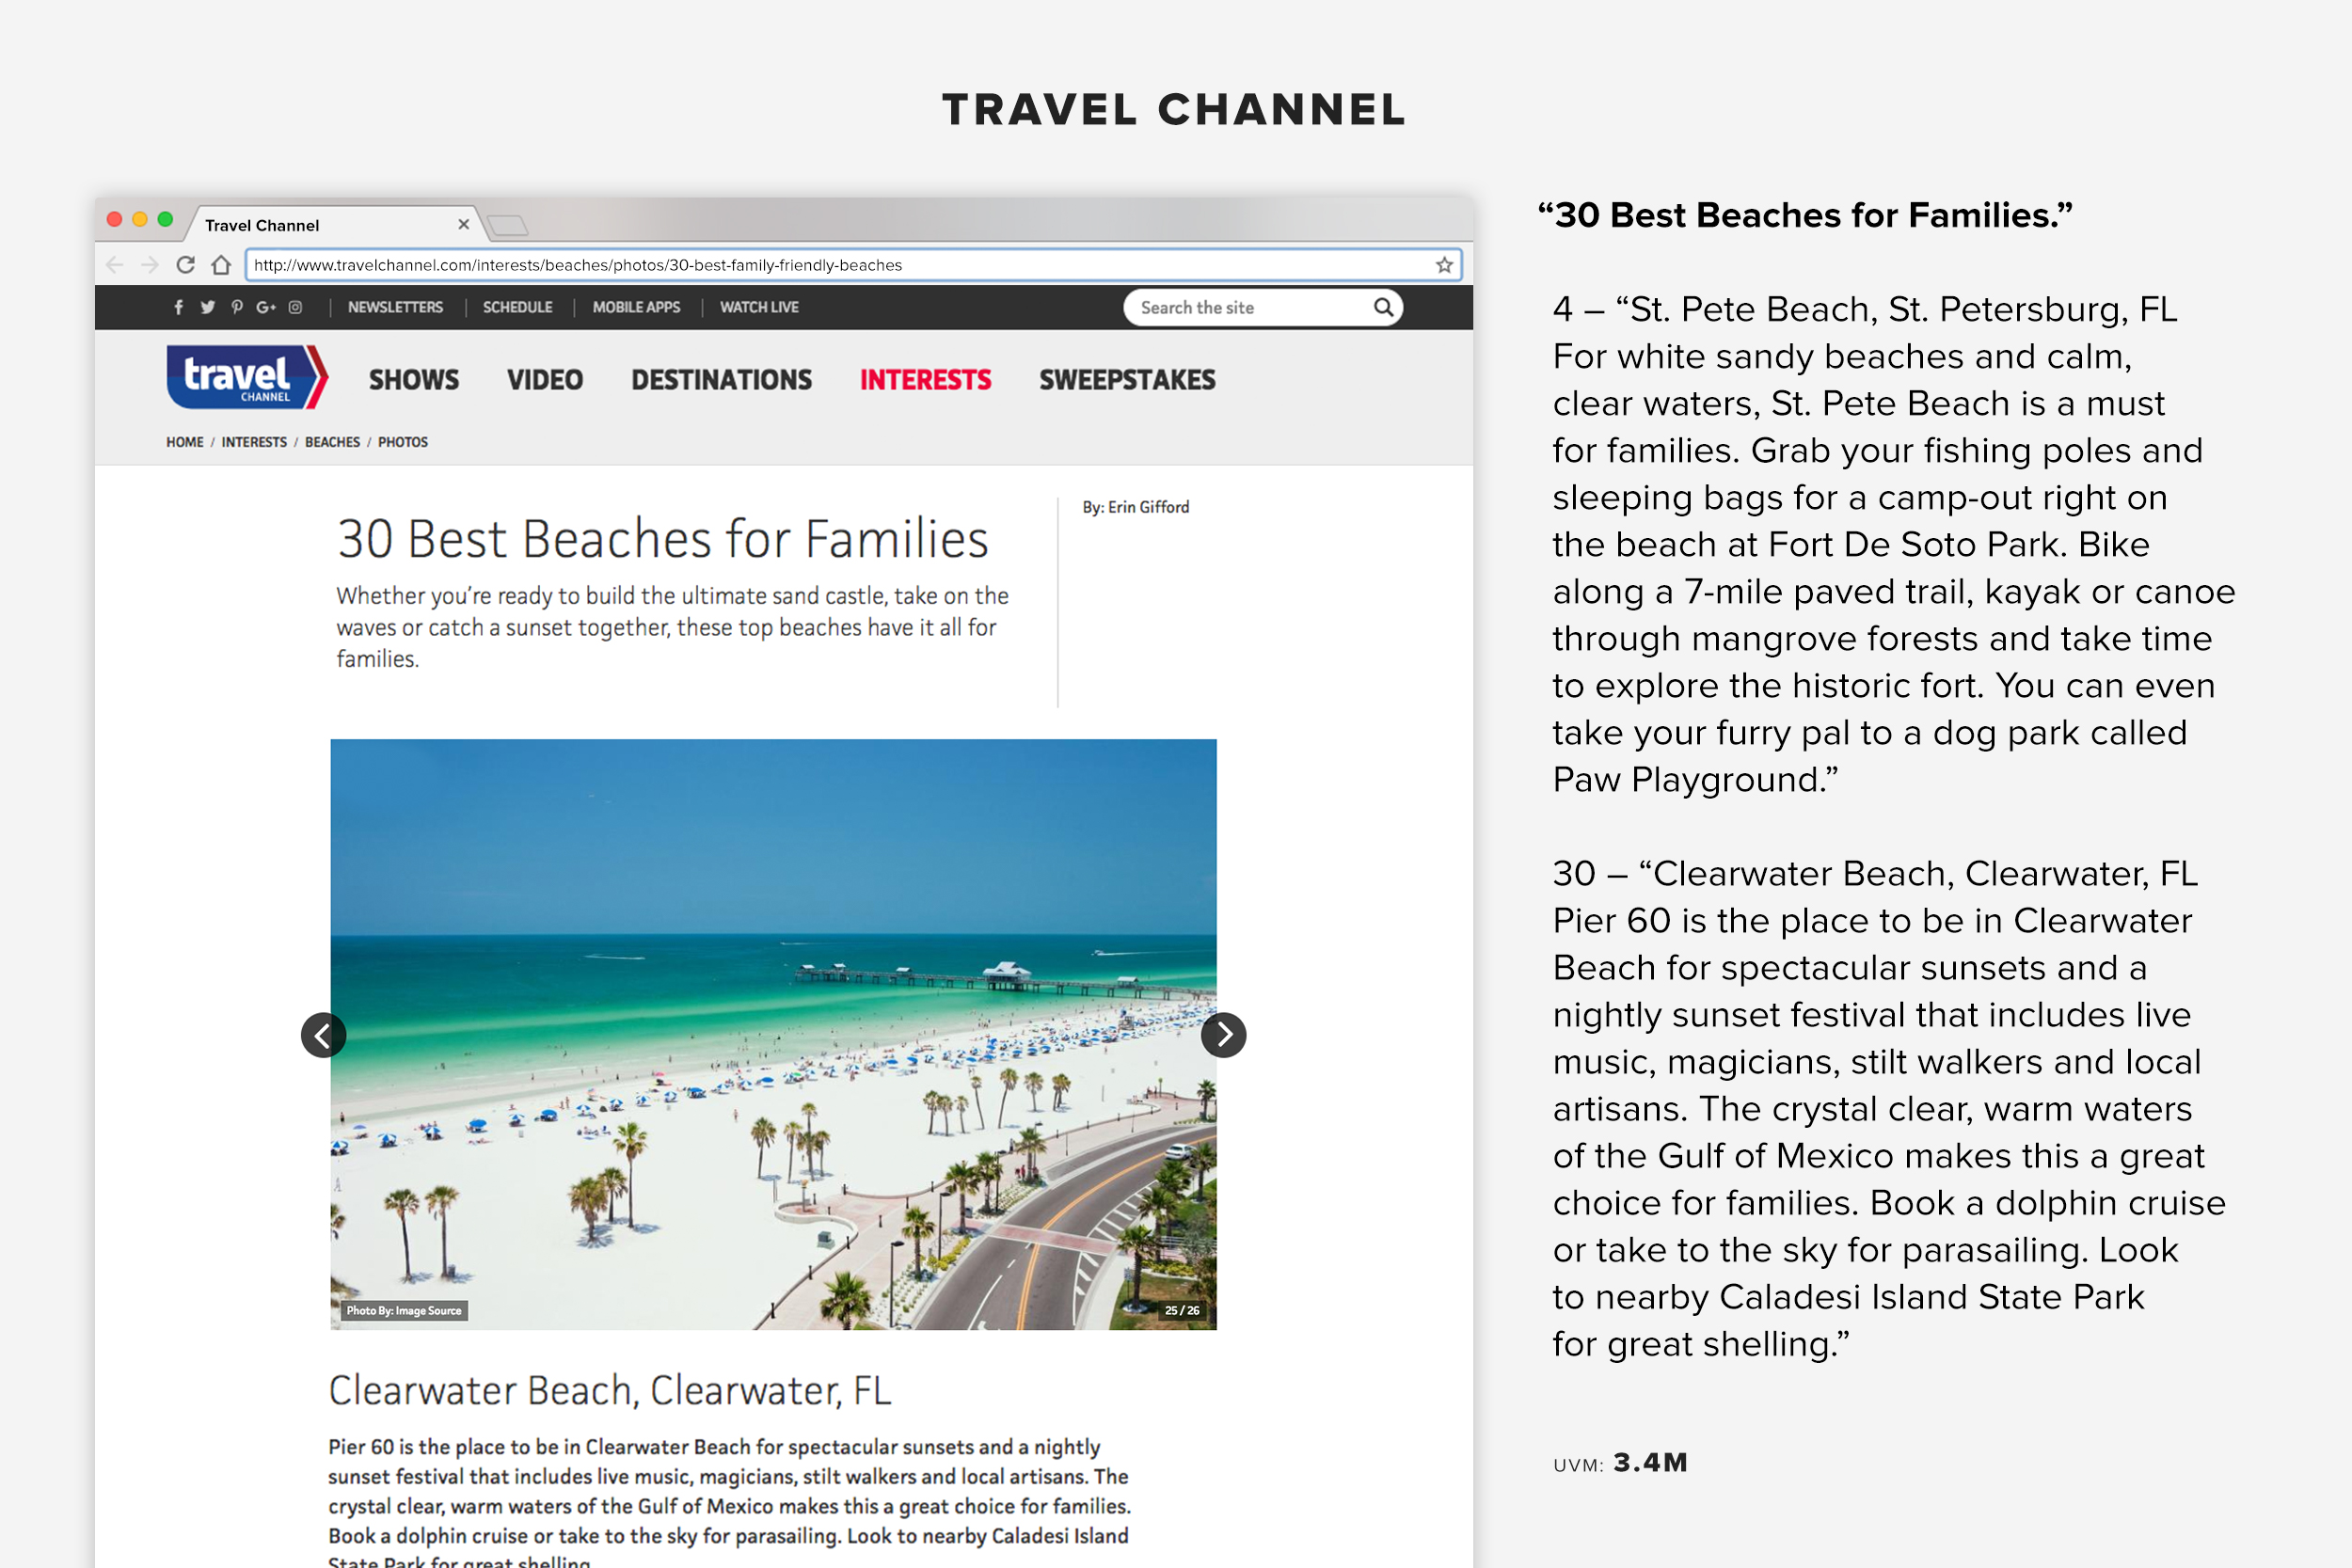 VSPC - Travel Channel.jpg